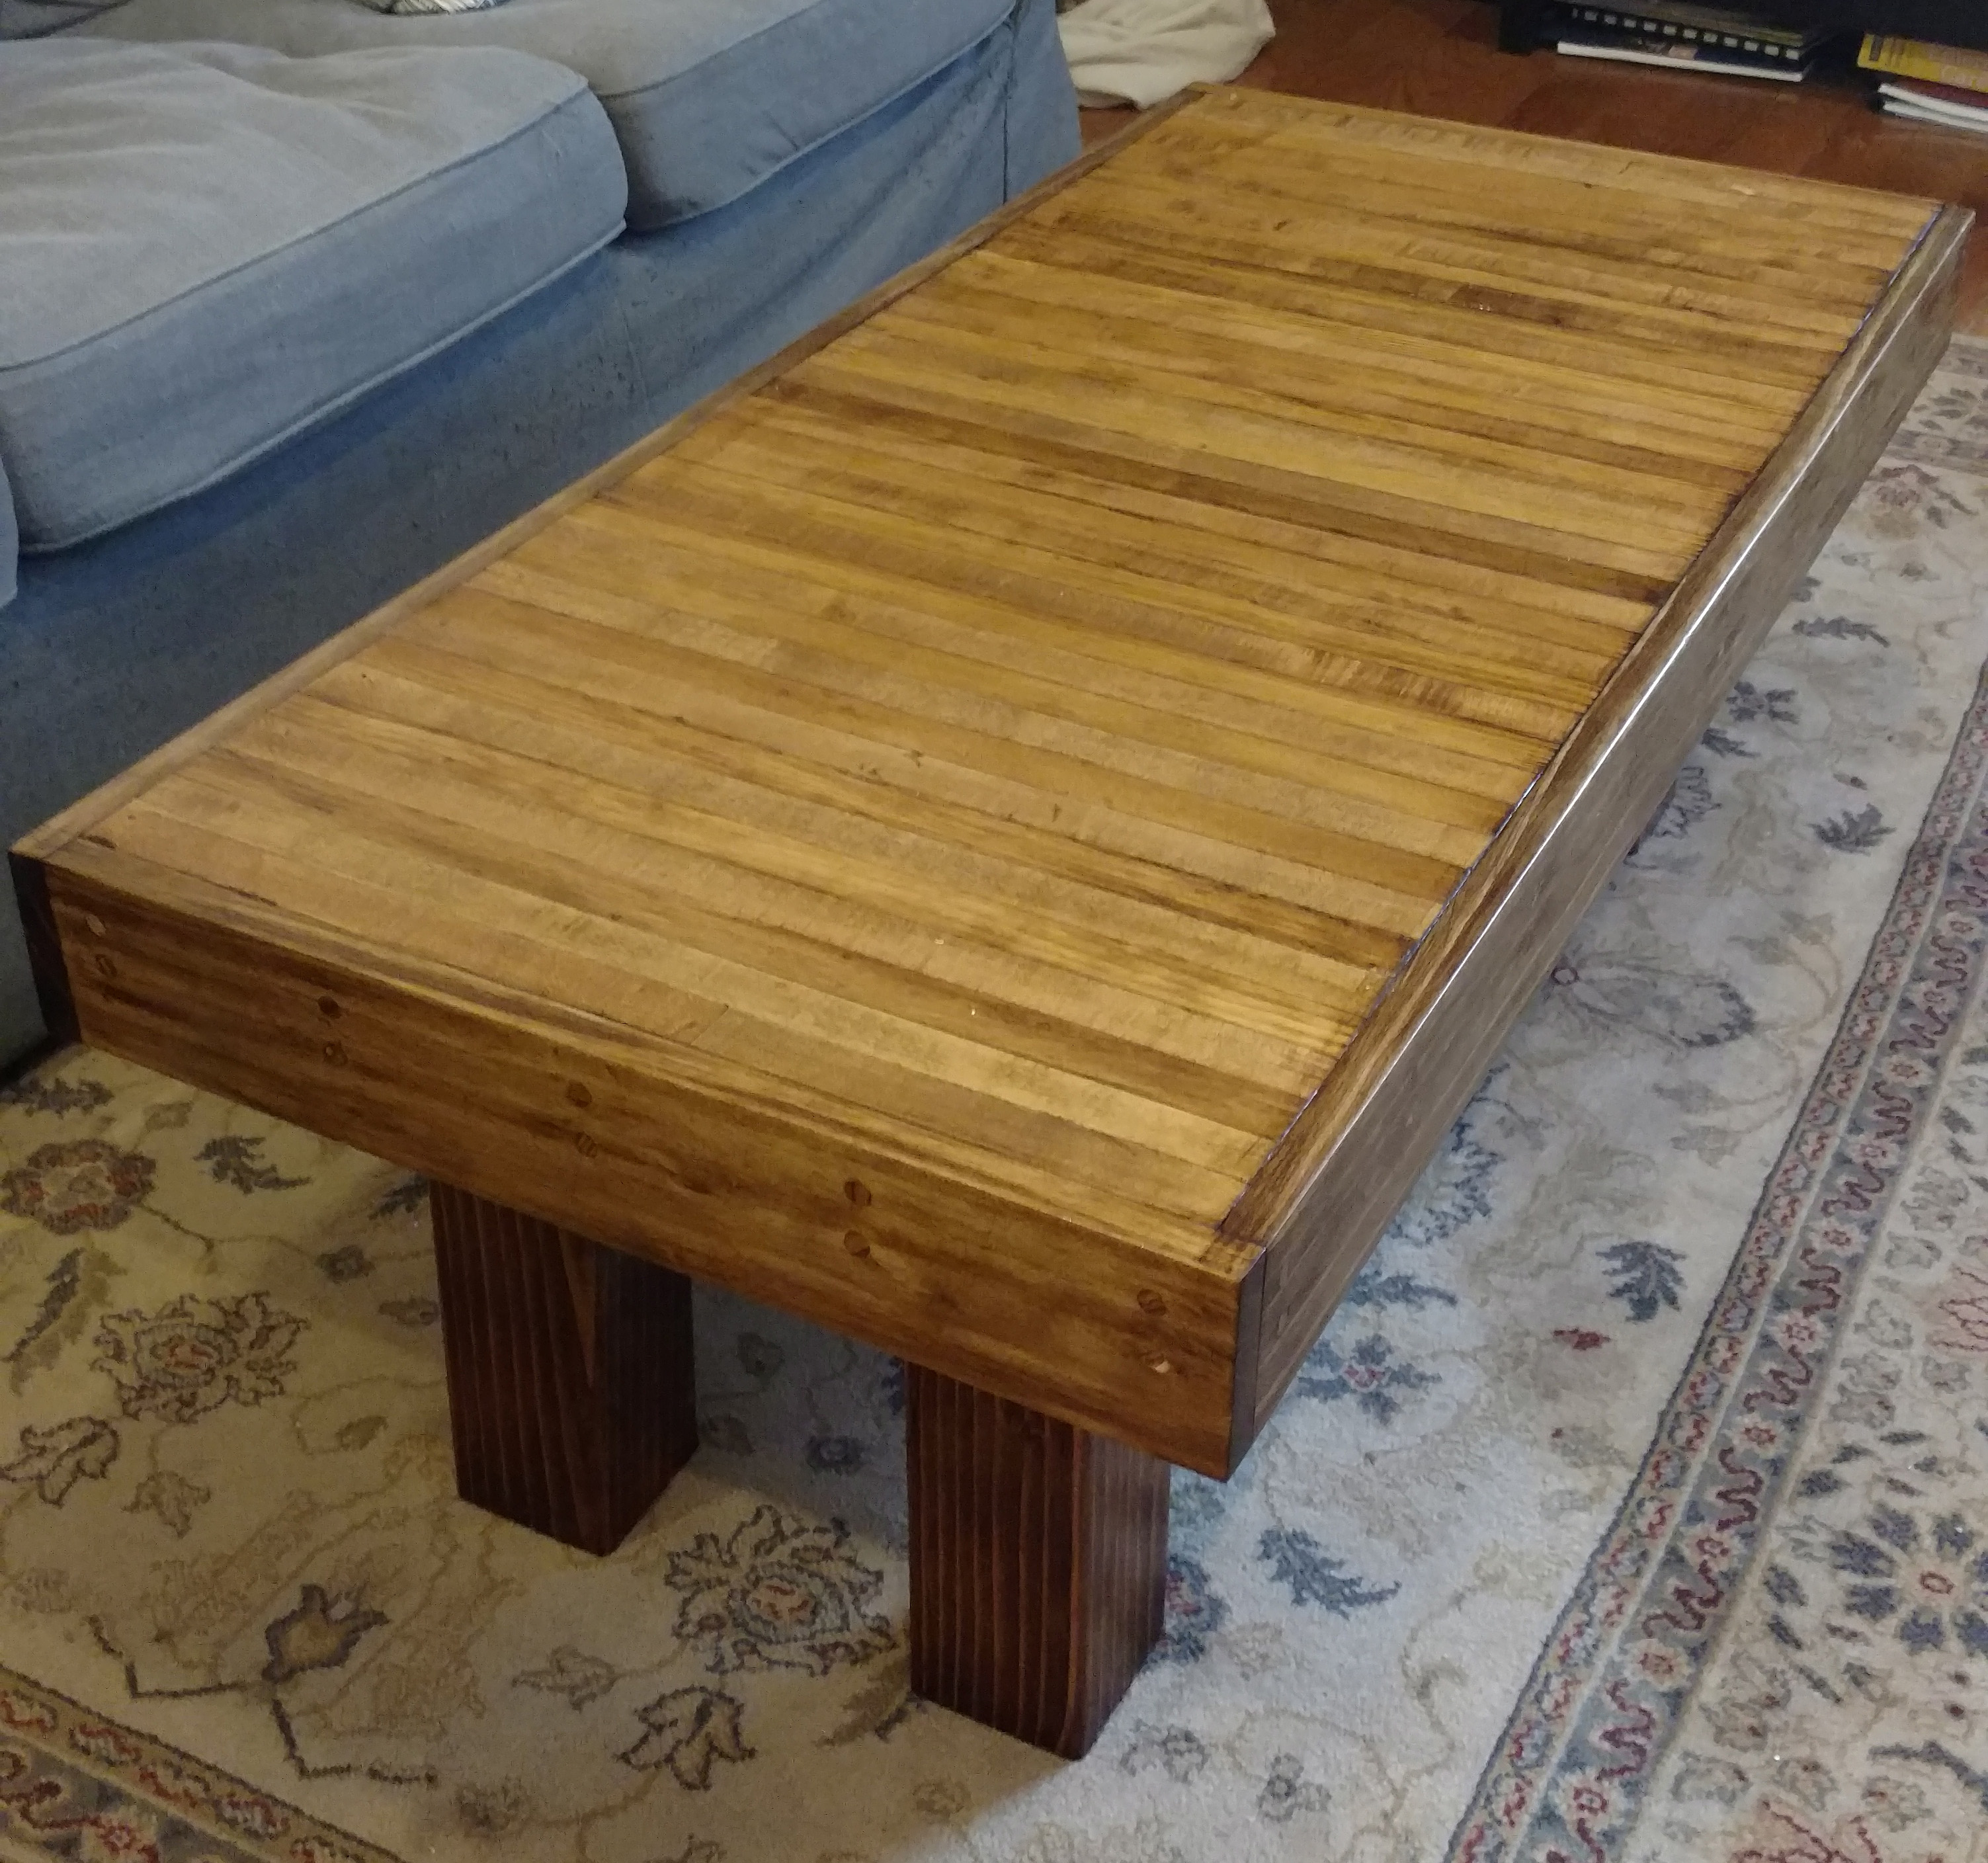 Used Lane Coffee Table: This Handsome Recycled Coffee Table Used To Be A Bowling Lane